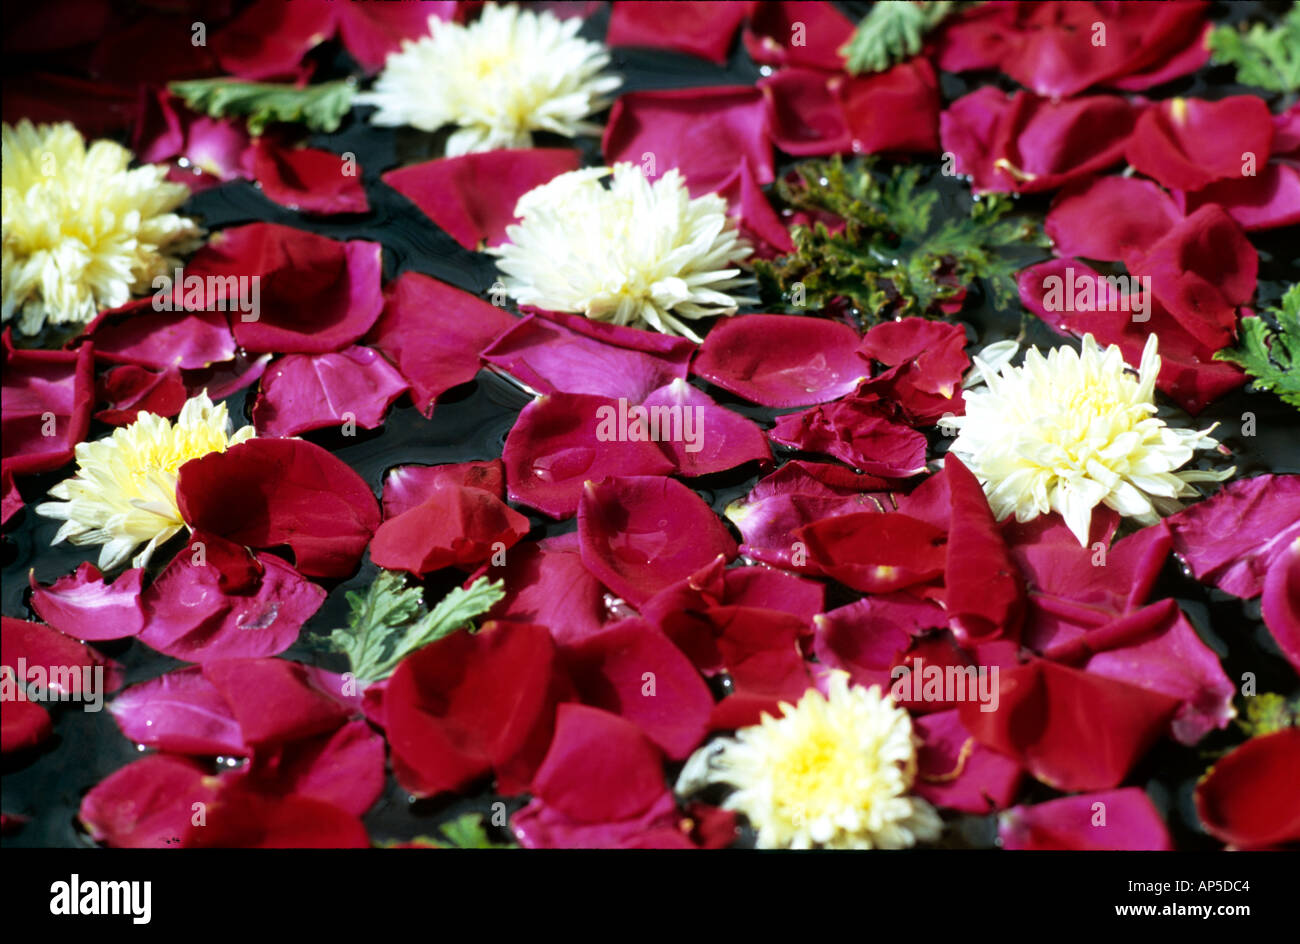 Red And White Flowers Floating In Water India Stock Photo 1465795